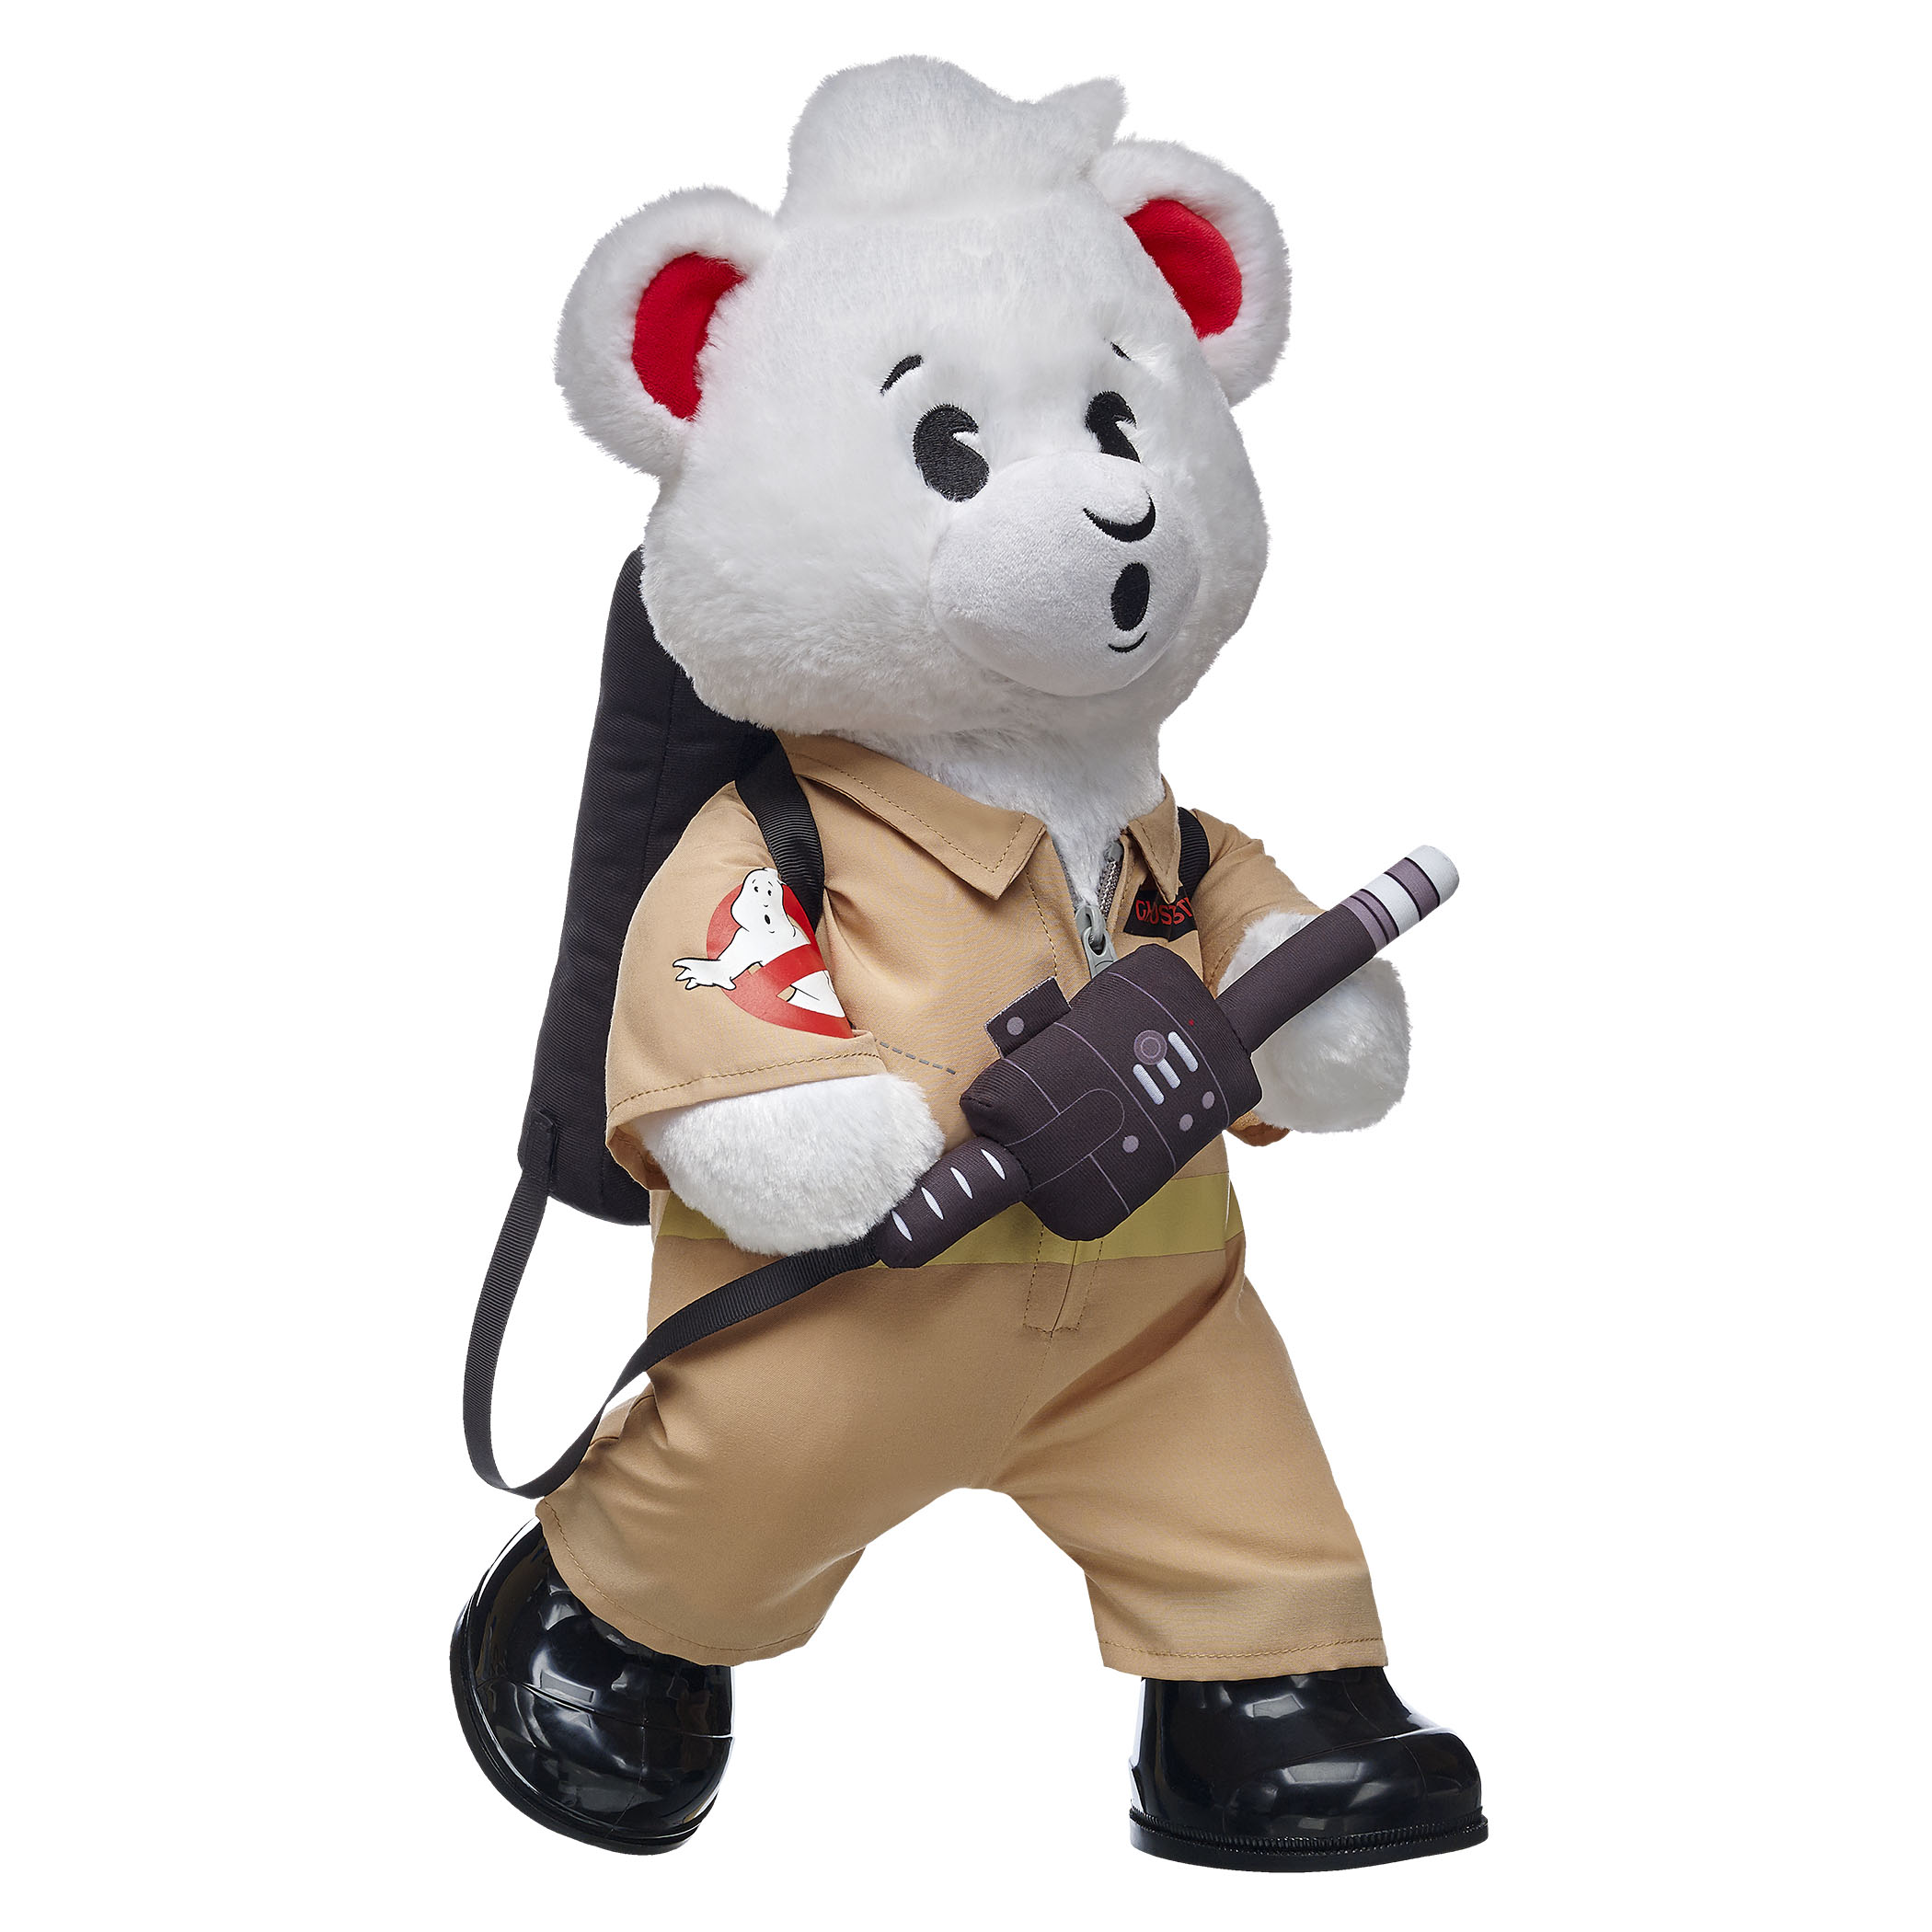 OFFICIAL GHOSTBUSTERS BUILD A BEAR WORKSHOP PROTON PACK ACCESSORY WITH SOUNDS